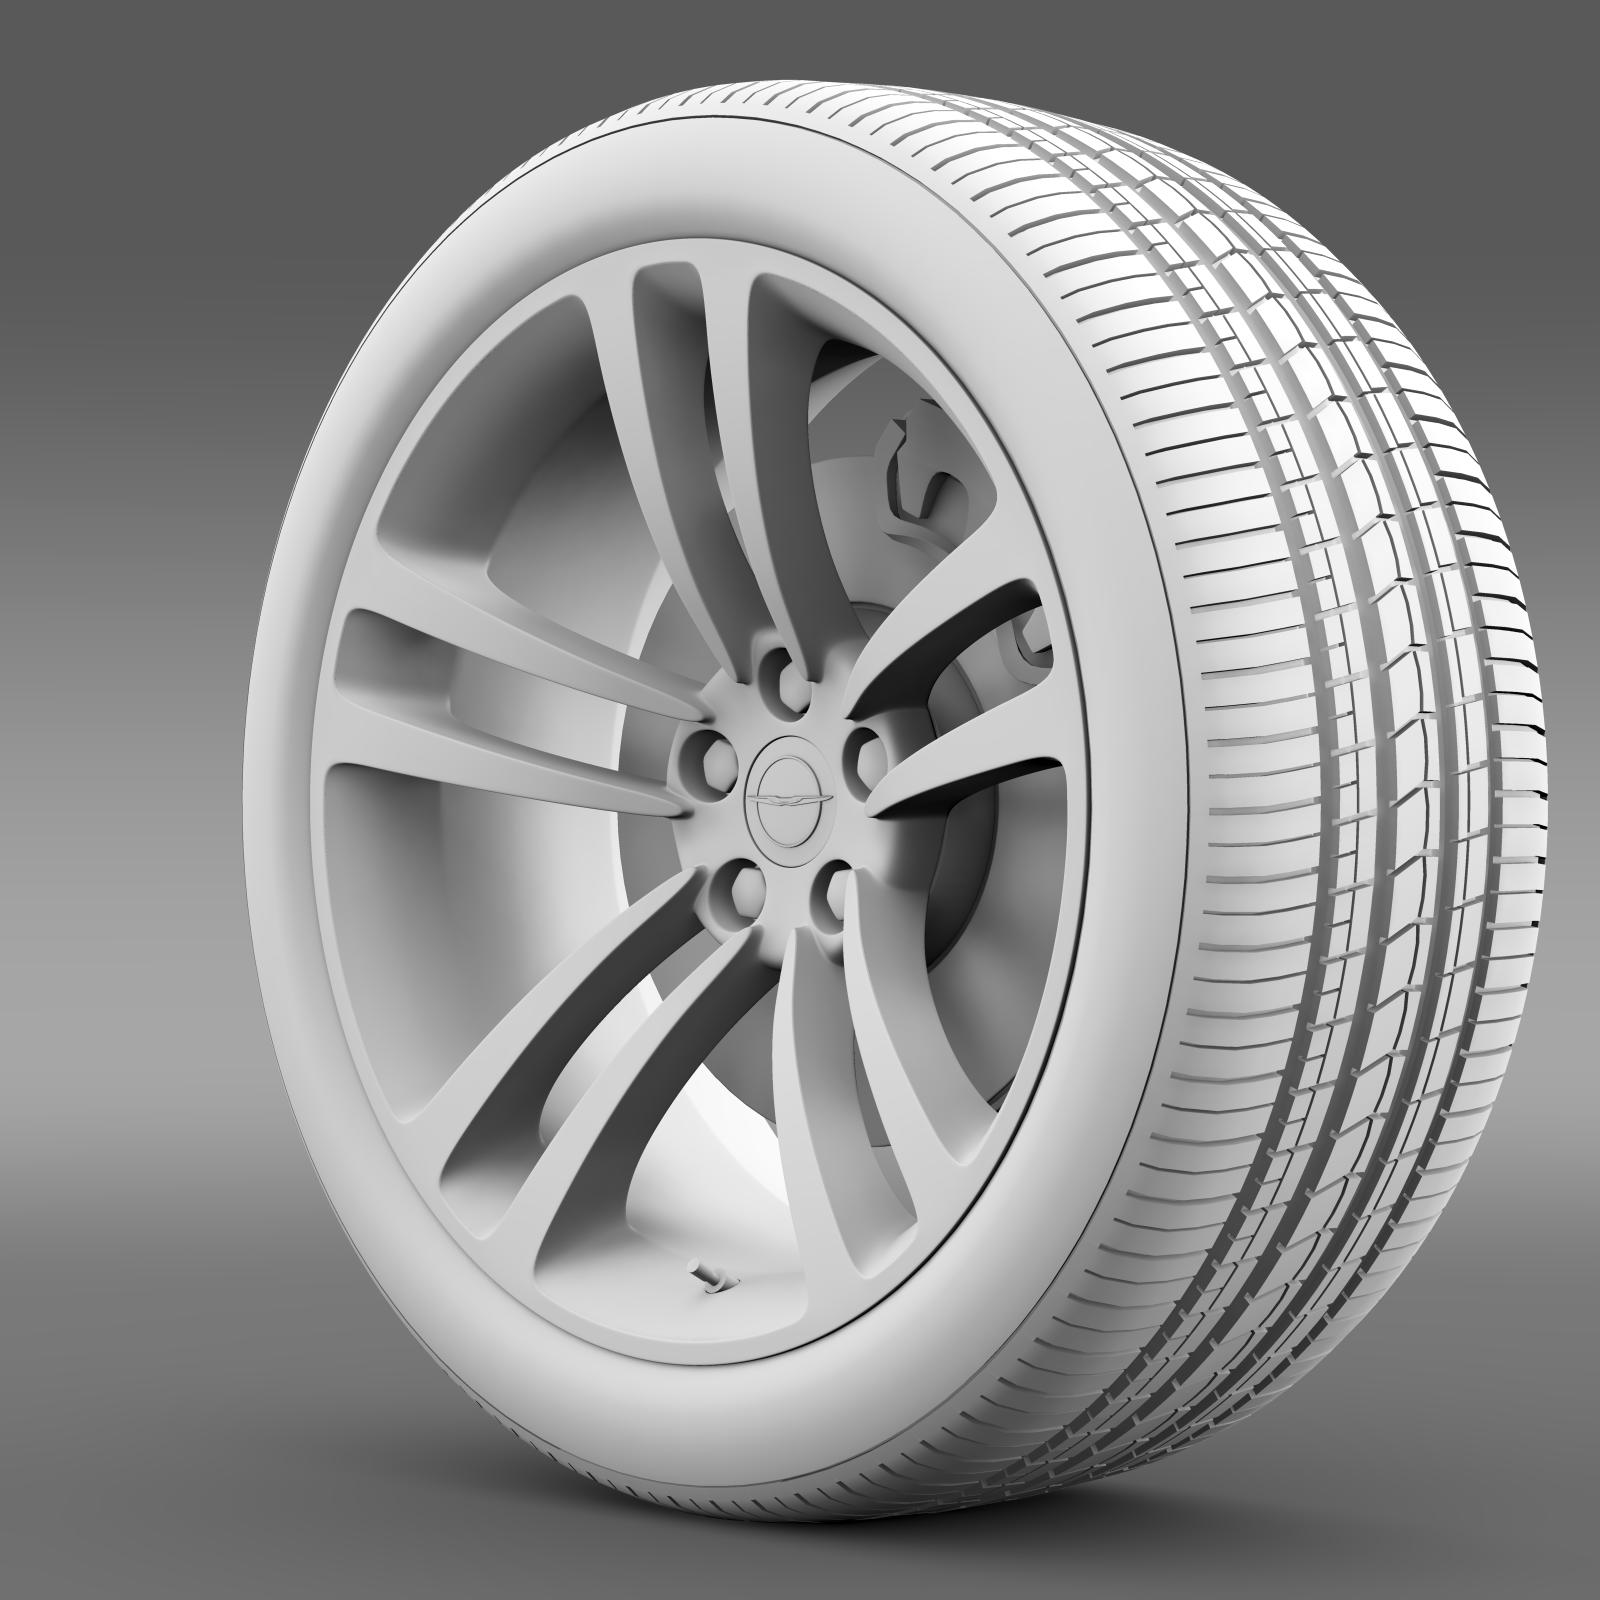 chrysler 300 srt8 core wheel 3d model 3ds max fbx c4d lwo ma mb hrc xsi obj 210632